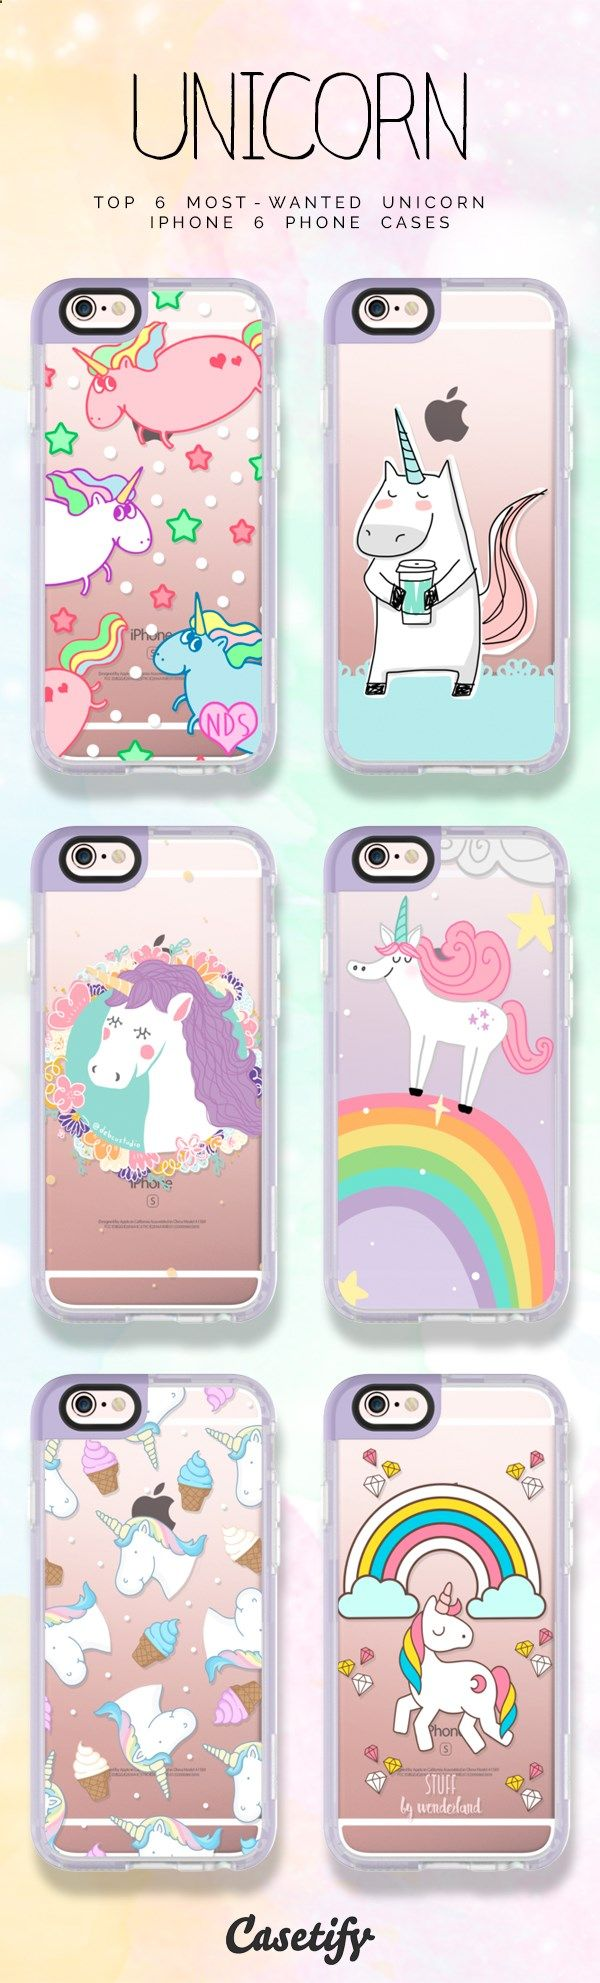 Top 6 most wanted pastel unicorn iPhone 6 protective phone cases | Click through to shop these pastel iPhone phone case ideas >>> www.casetify.com/... #animal | Casetify